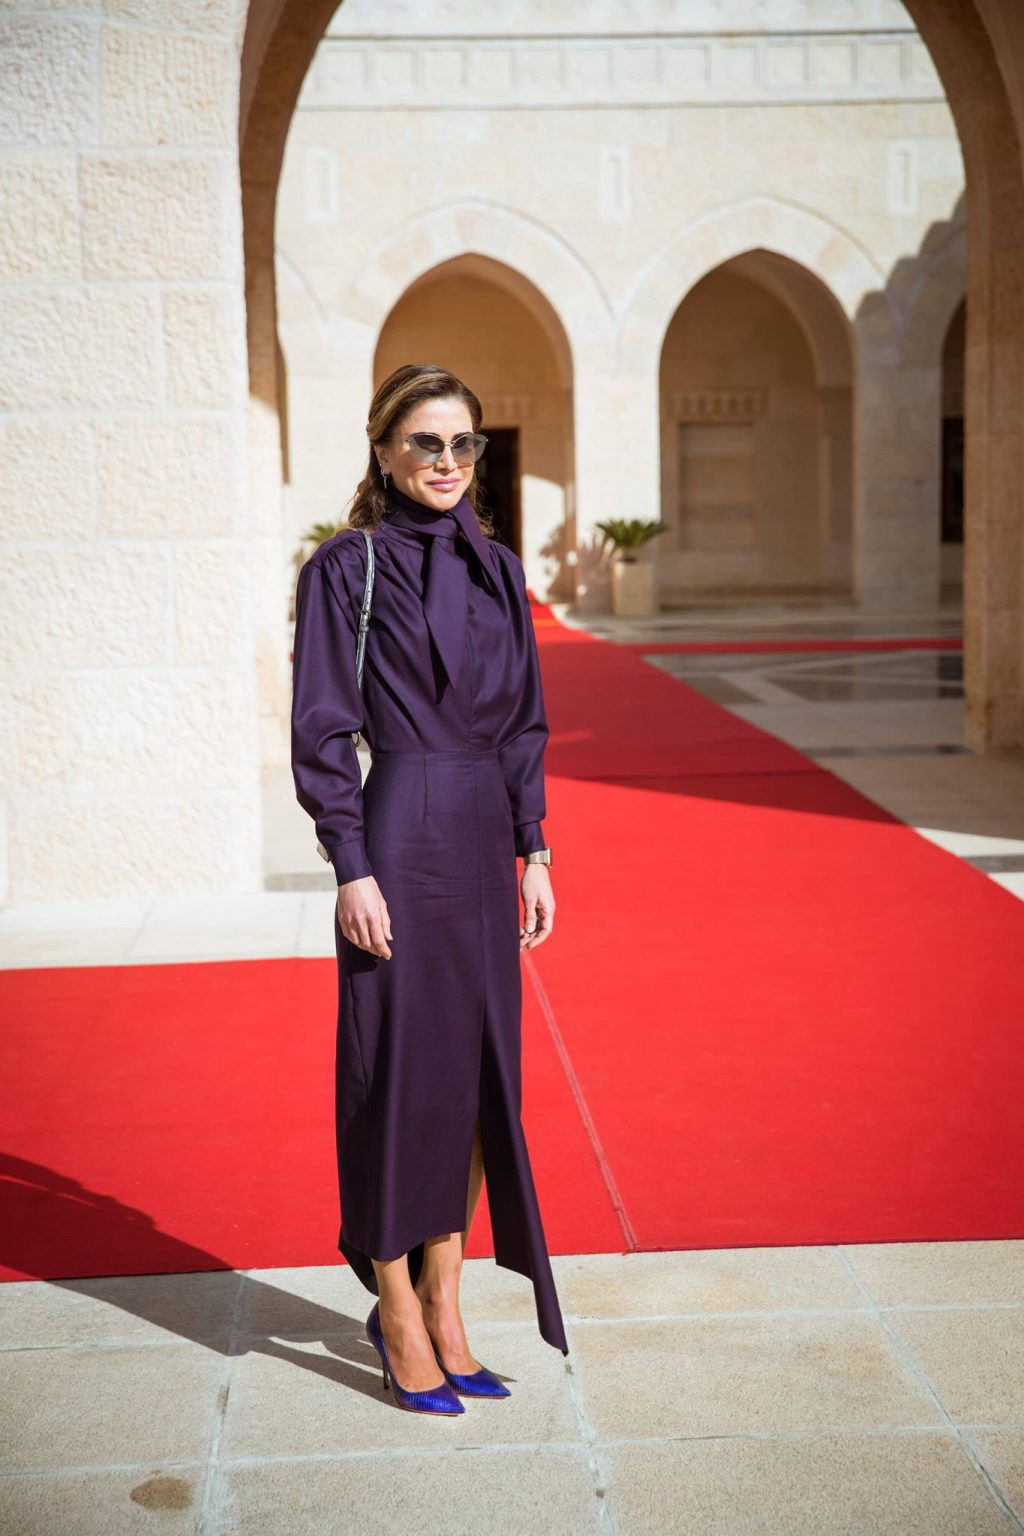 Why Queen Rania Looked Twice as Regal in This Ensemble